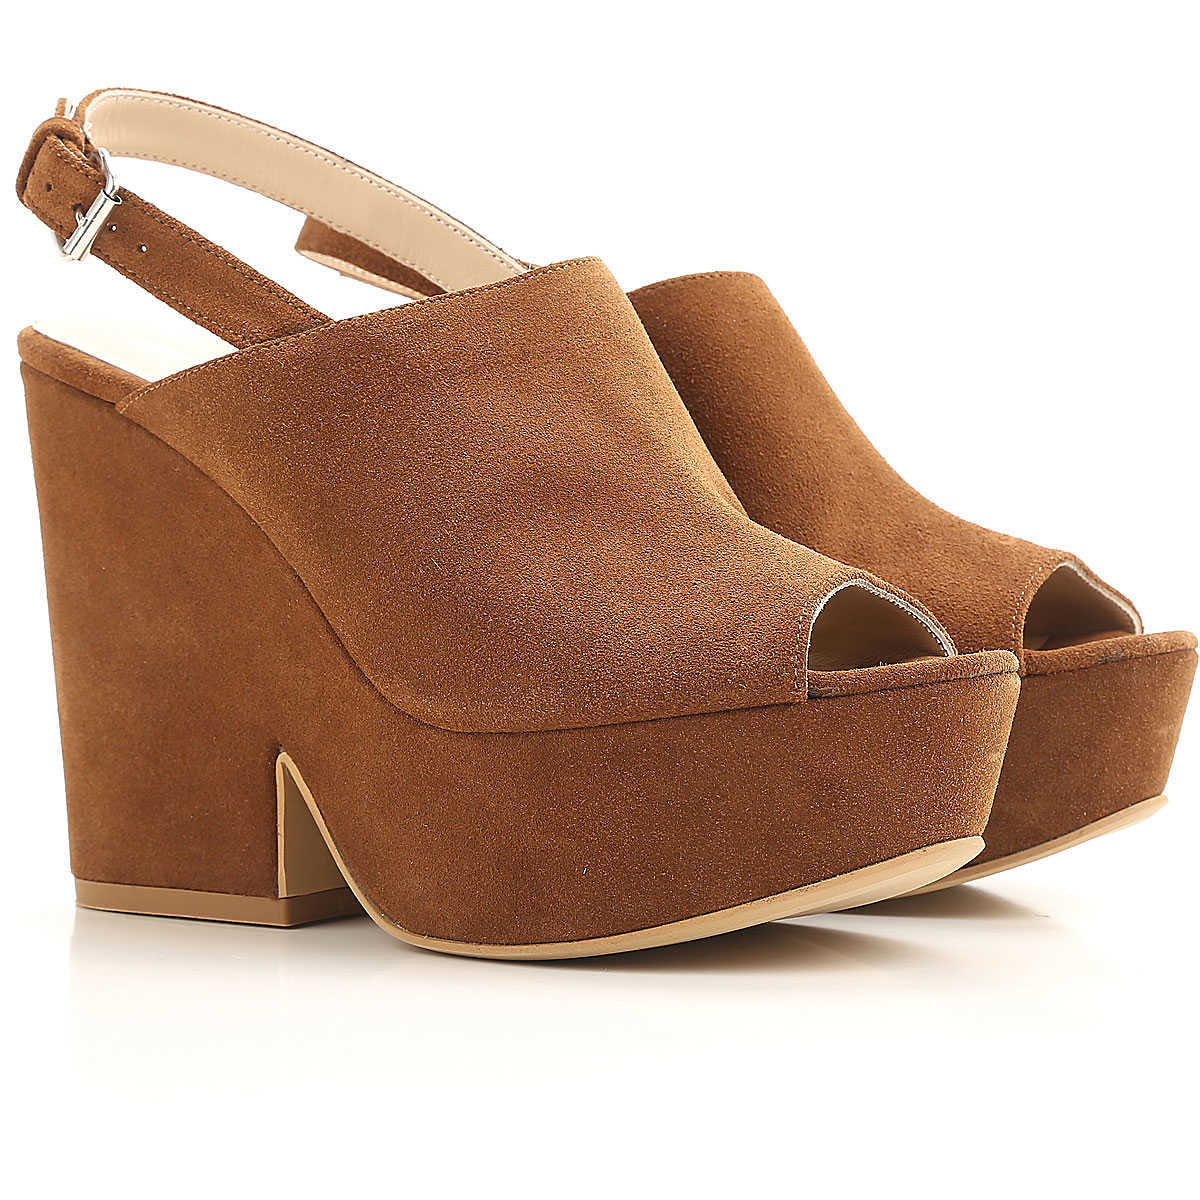 Strategia Wedges for Women On Sale in Outlet Tobacco DK - GOOFASH - Womens HOUSE SHOES